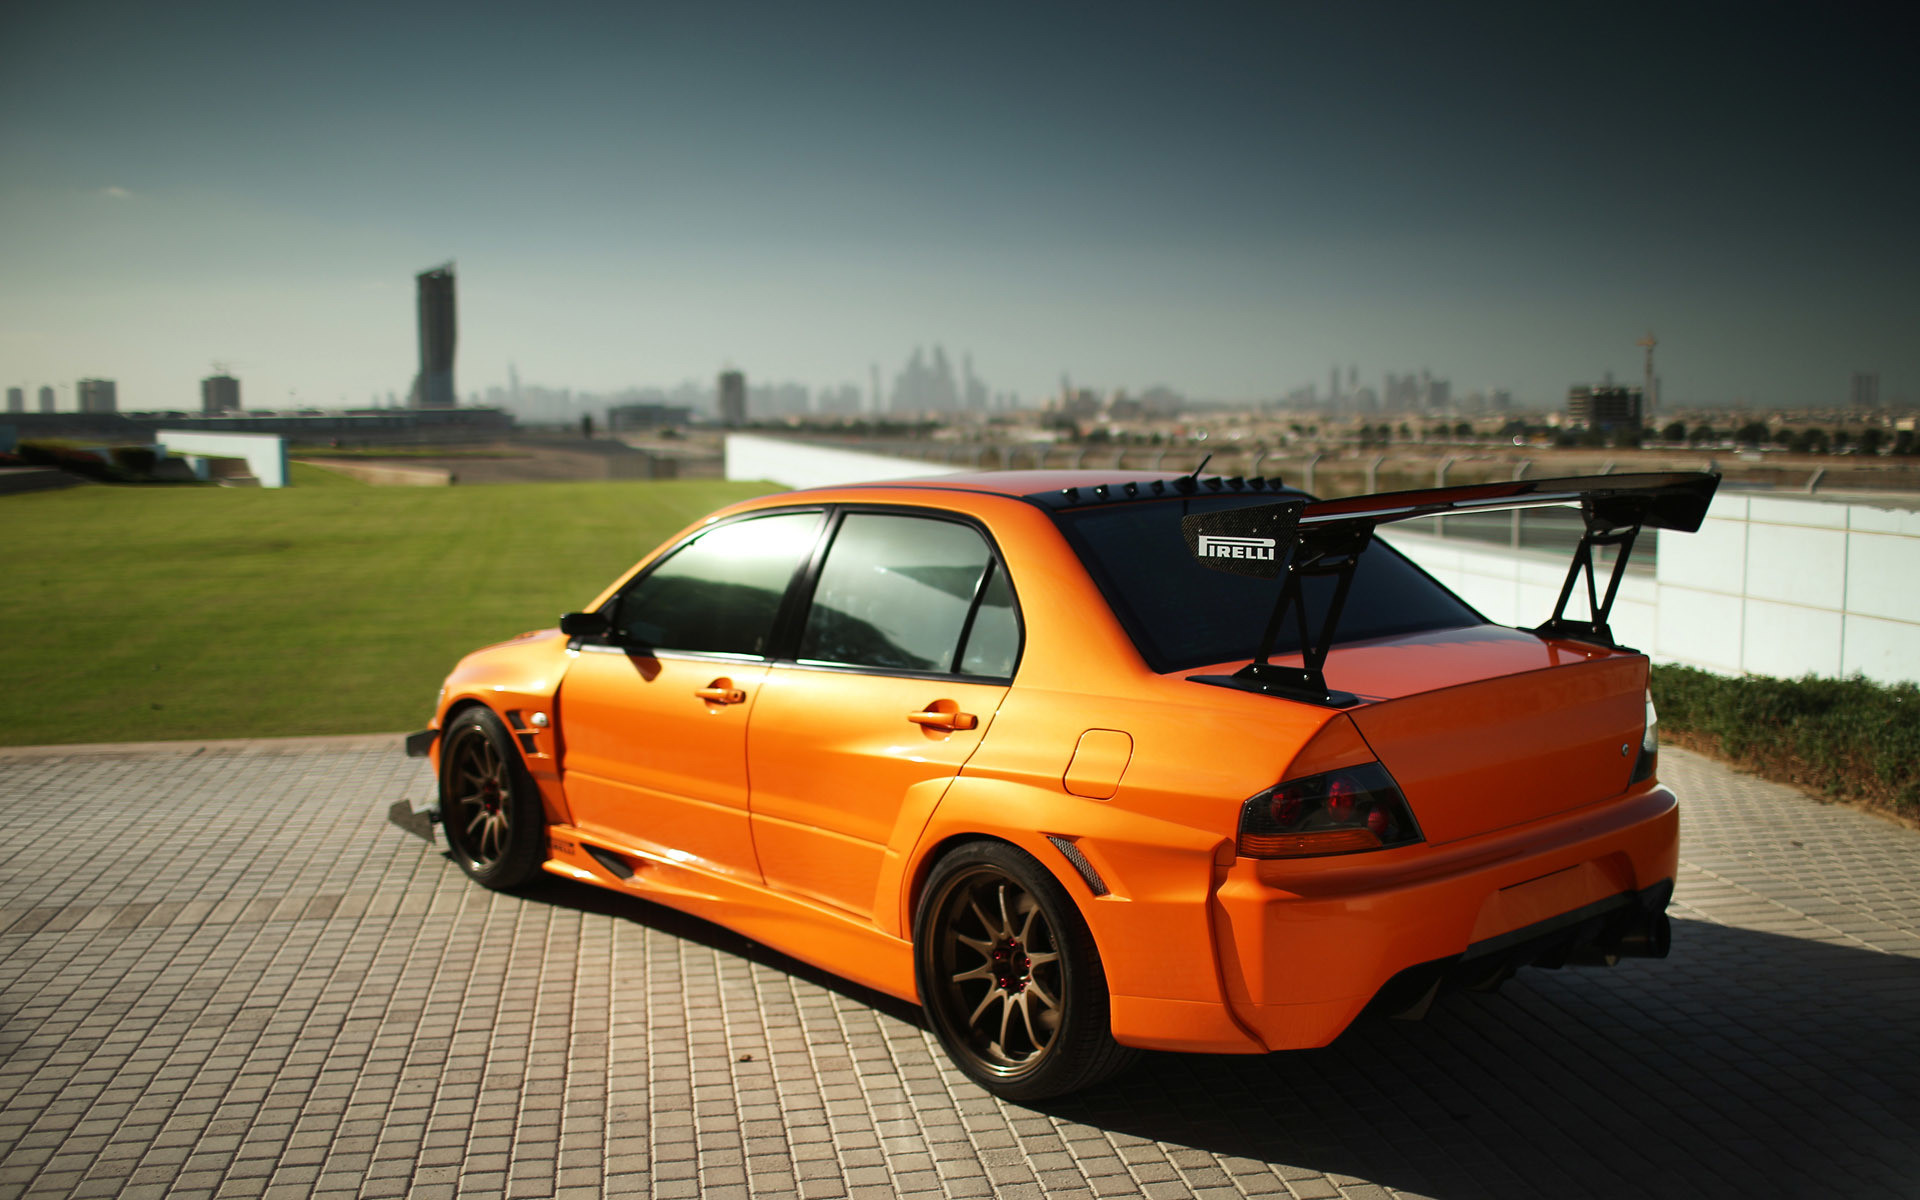 Mitsubishi Lancer Evolution HD Wallpaper 1920×1080 Mitsubishi Lancer  Evolution HD Wallpaper 1920×1200